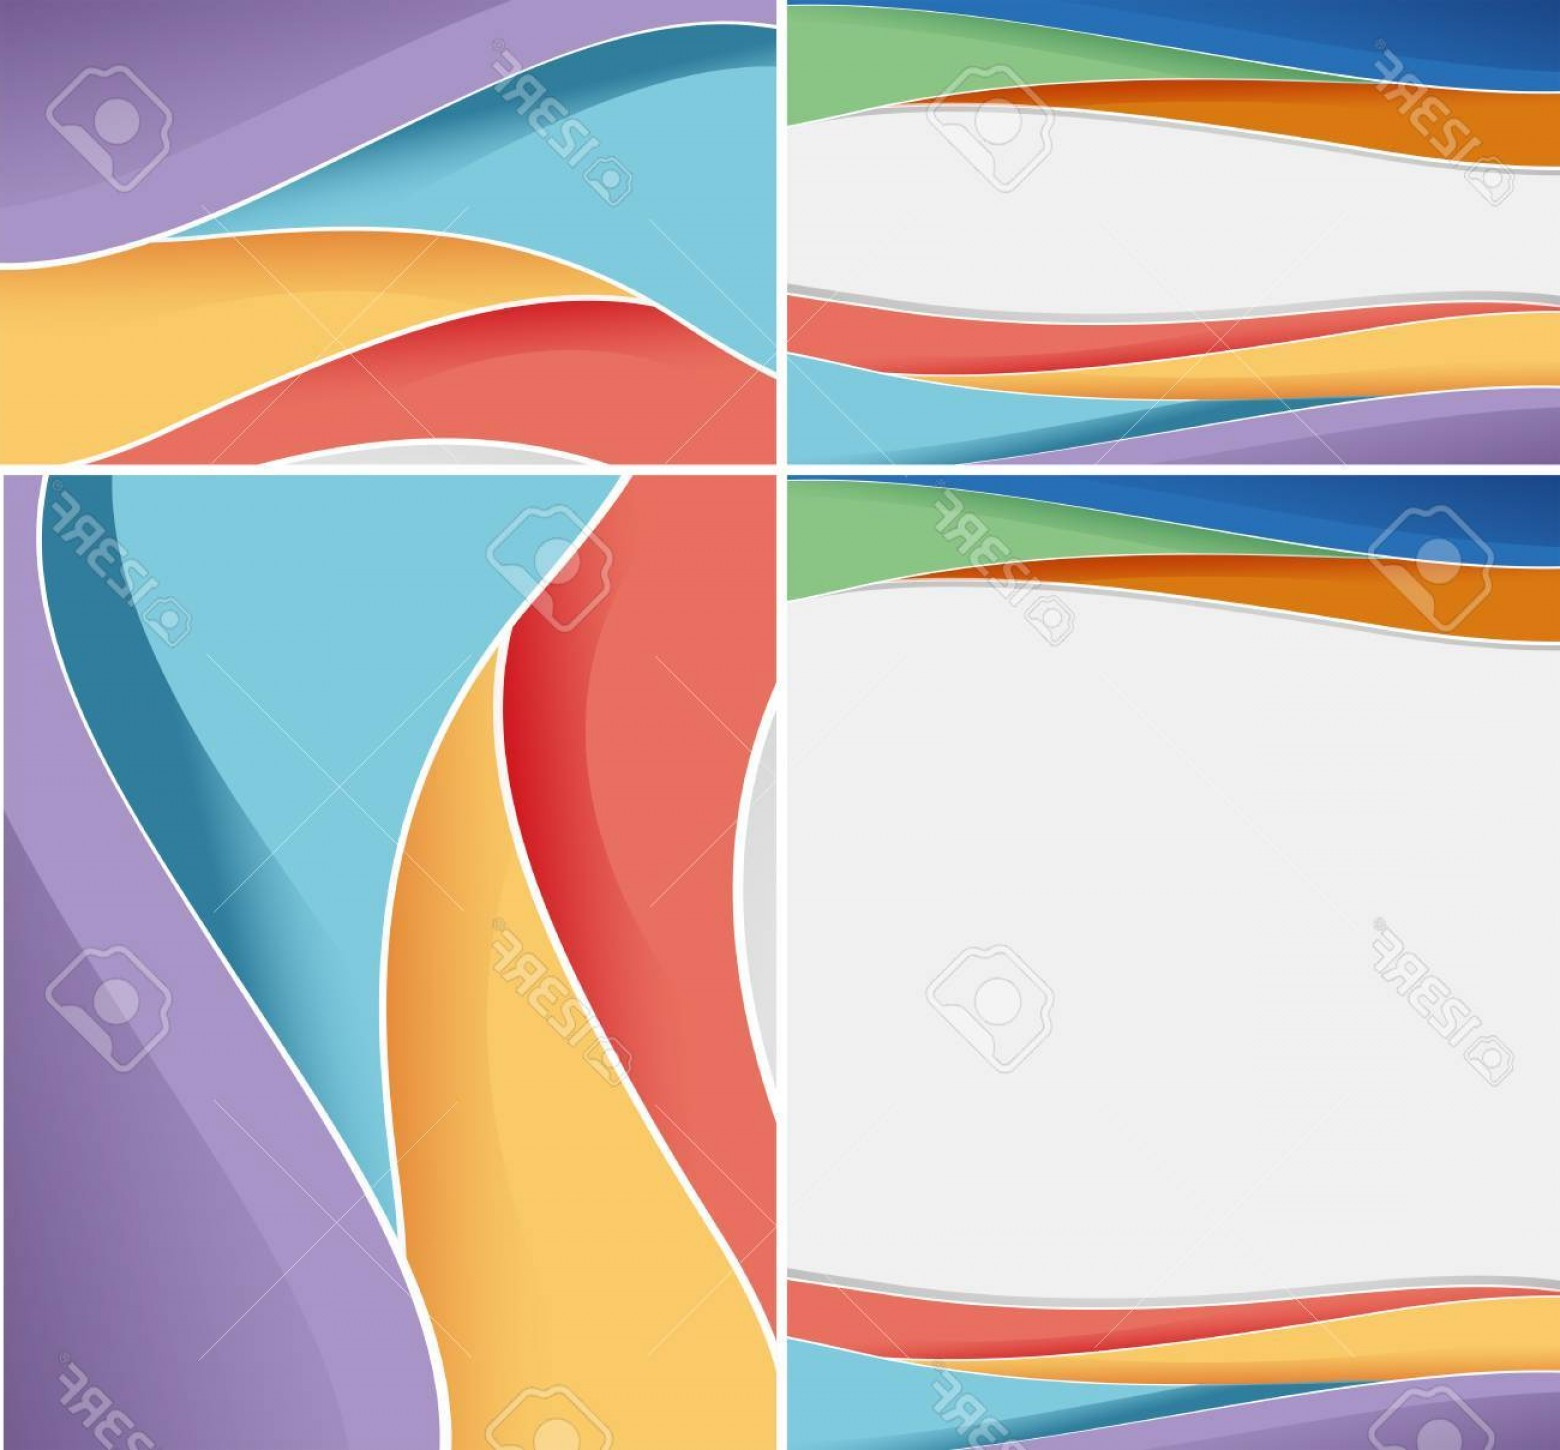 Wavy Line Illustrator Vector: Photostock Vector Different Abstract Background With Colorful Wavy Lines Illustration